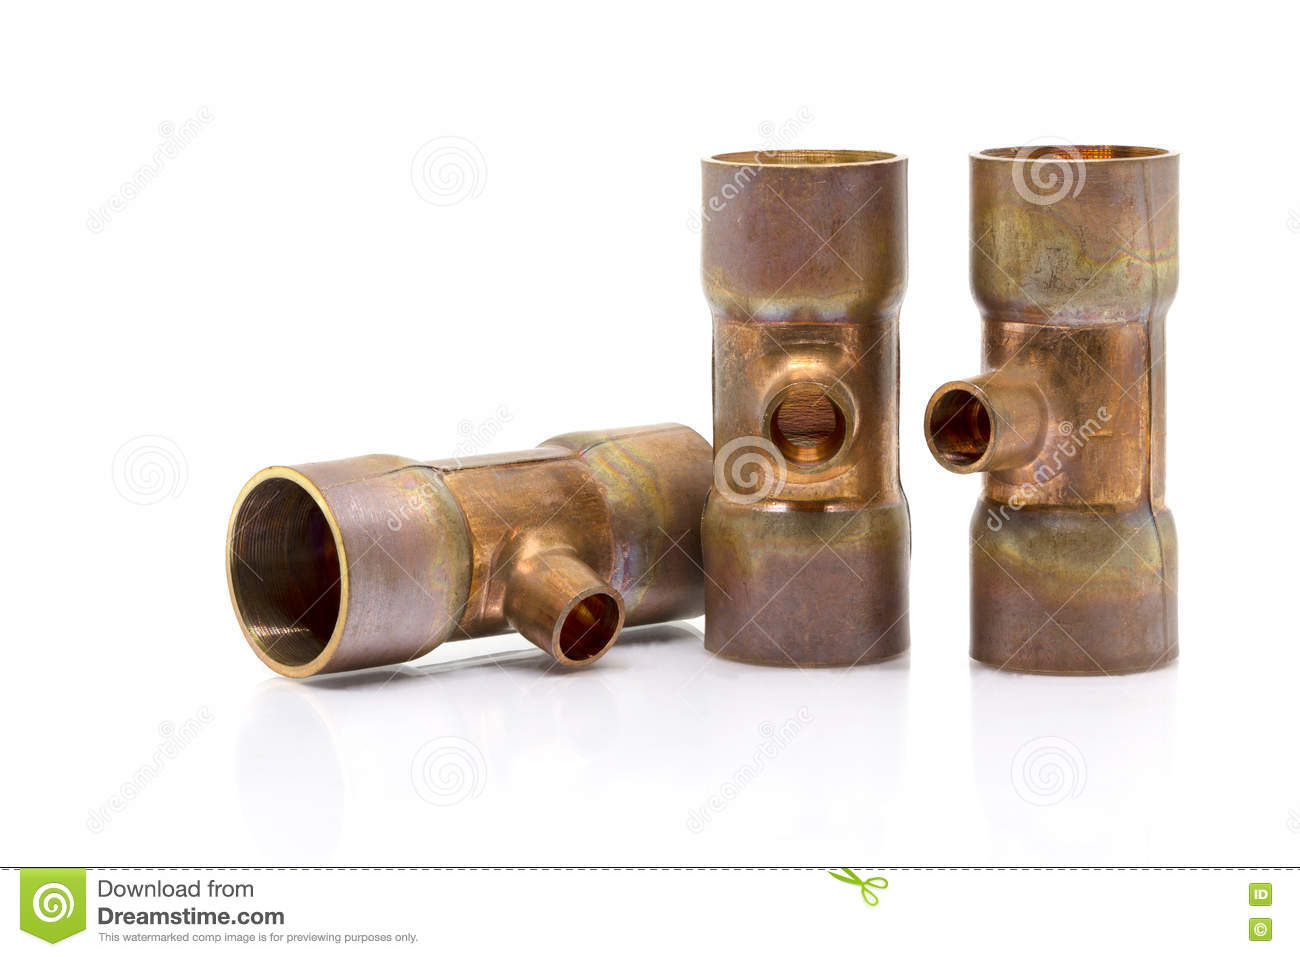 T-joint Connection Pipe Of Air-conditioner Or Refrigerant